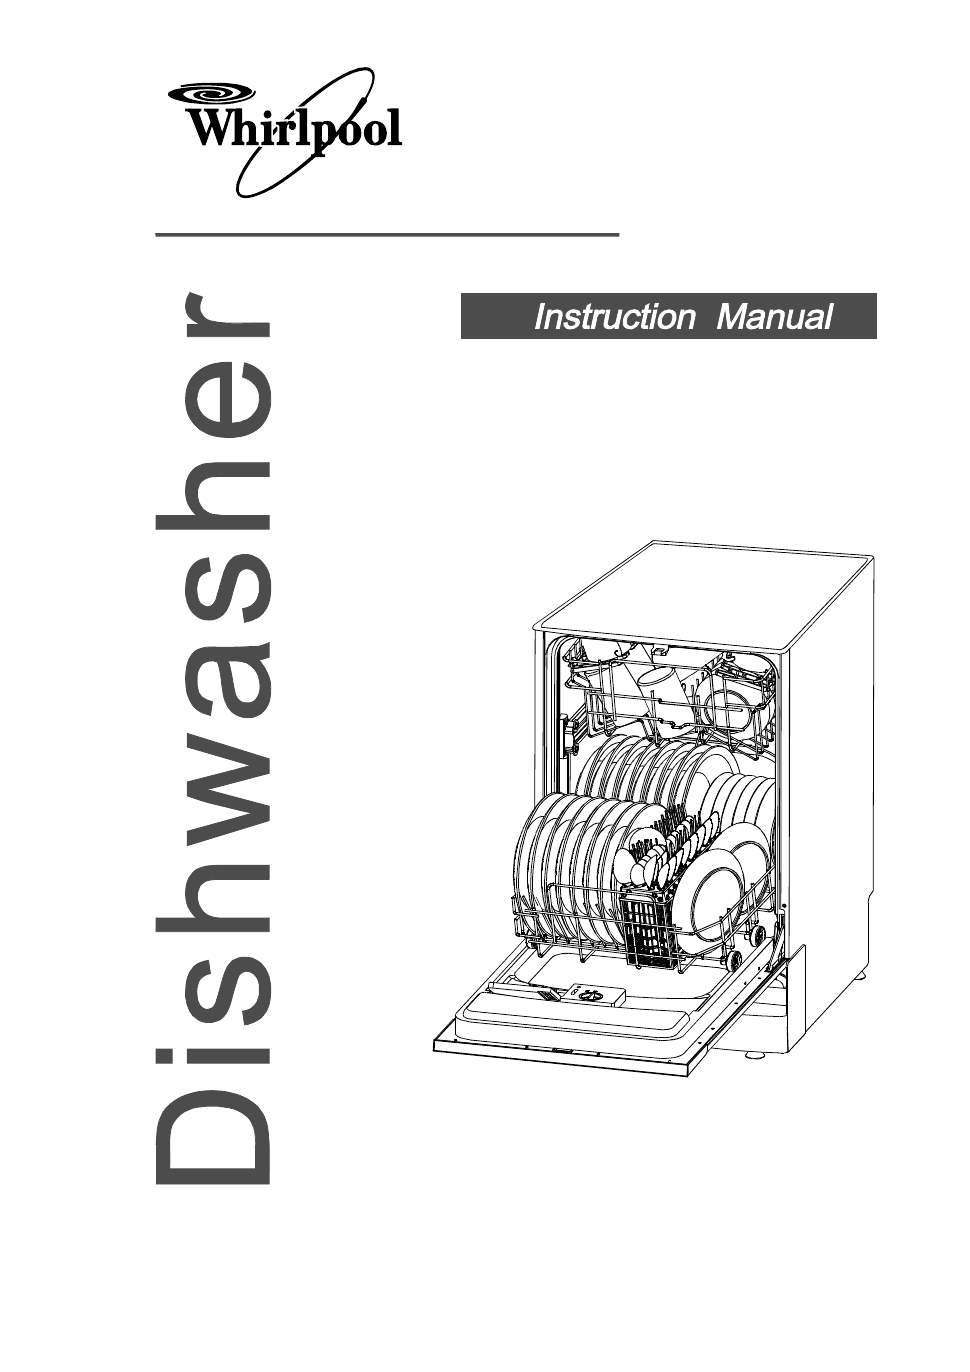 whirlpool whirlpool dishwasher adg 175 user s manual free pdf rh  manualagent com whirlpool 6th sense dishwasher instruction manual whirlpool  dishwasher ...